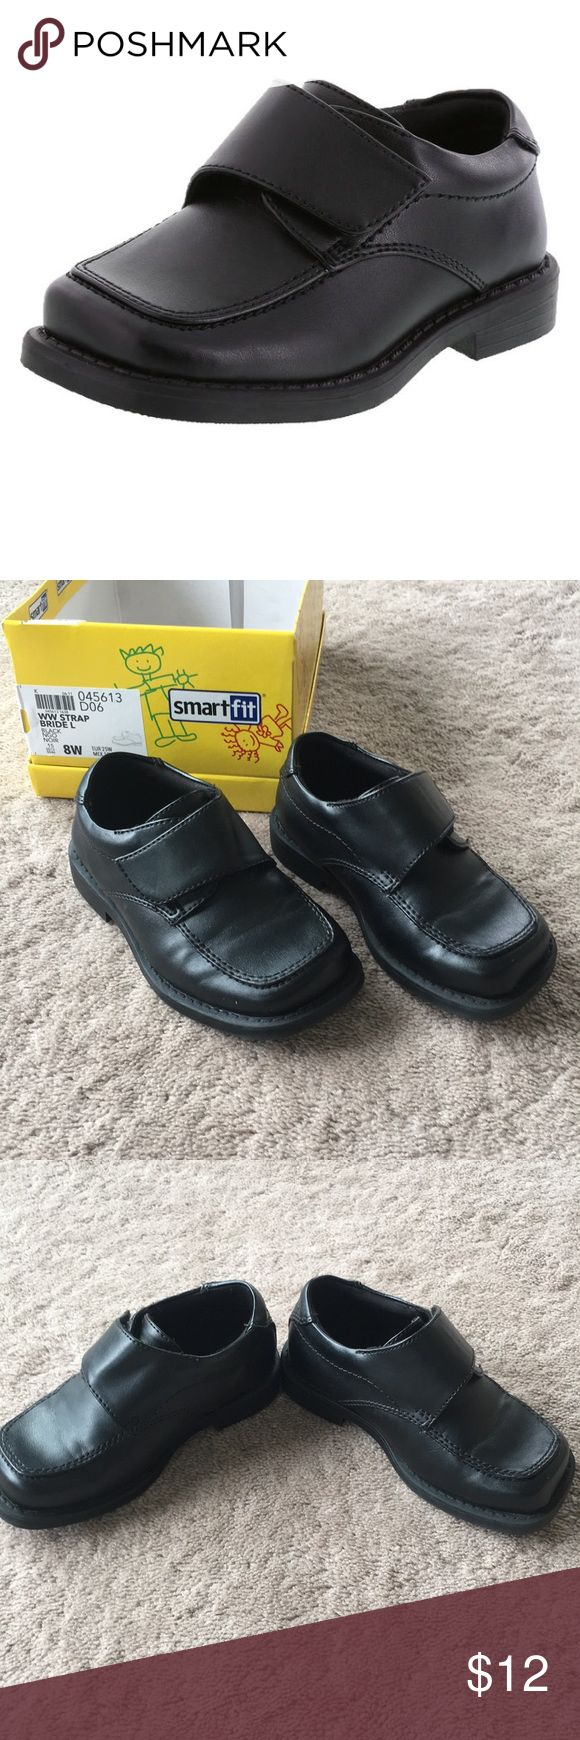 Toddler Dress Shoes Perfect for any special occasion! Worn once to a wedding - in EUC. Size 8 Wide. My son doesn't usually need wide, so I think these just run slightly more narrow. Smartfit Shoes Dress Shoes